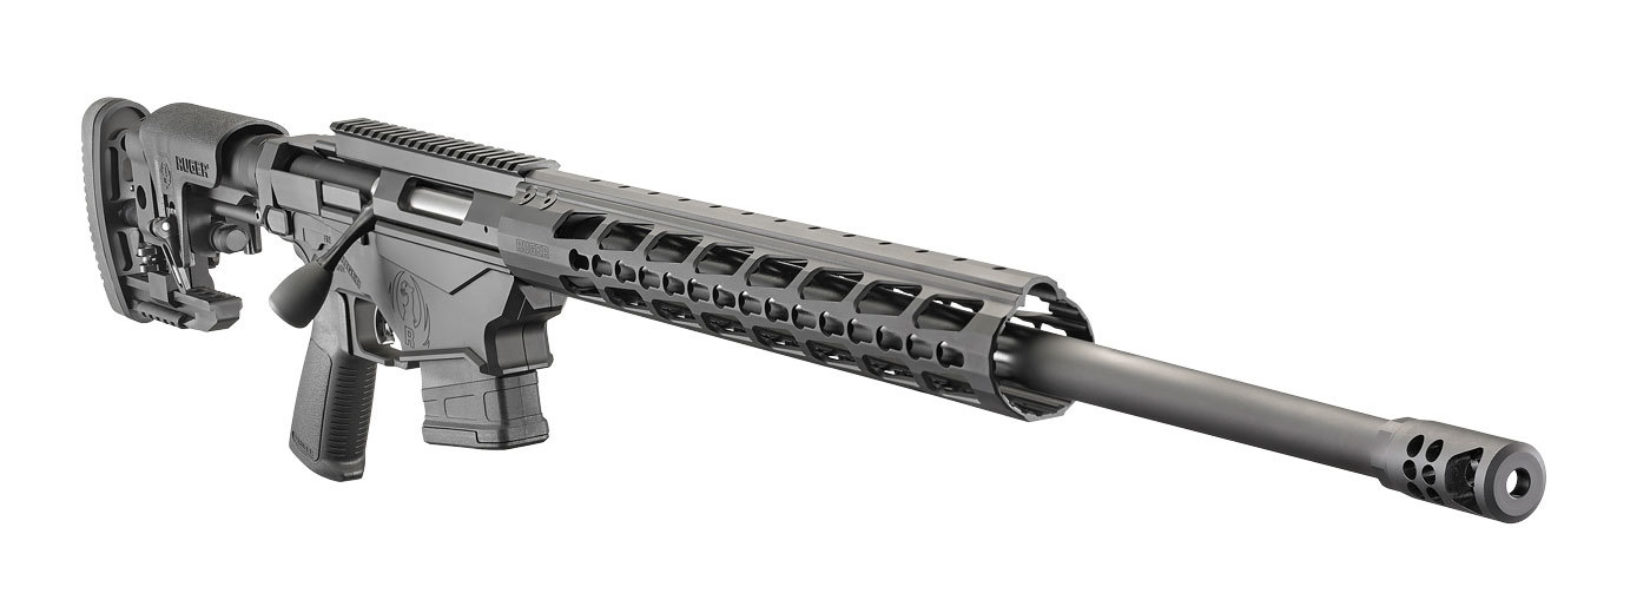 Ruger Precision Rifle 6 5 Creedmoor